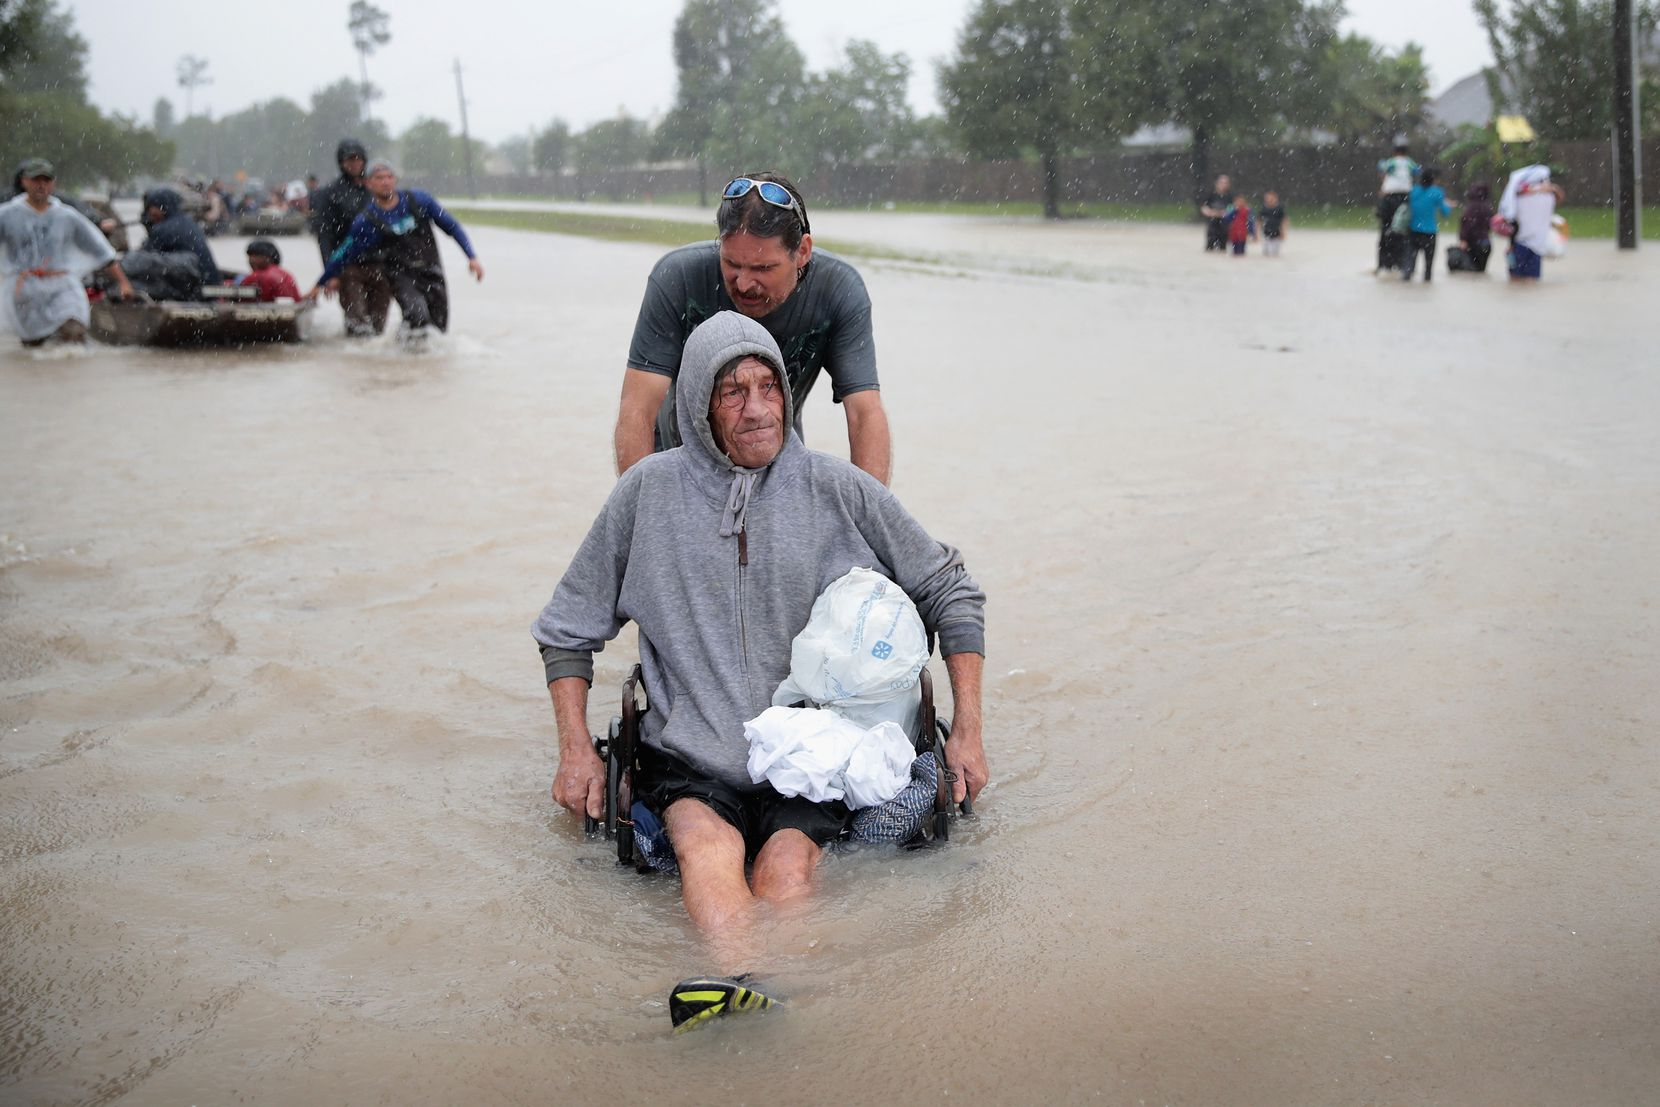 People make their way out of a flooded neighborhood after it was inundated with rain water, remnants of Hurricane Harvey, on August 28, 2017 in Houston, Texas.